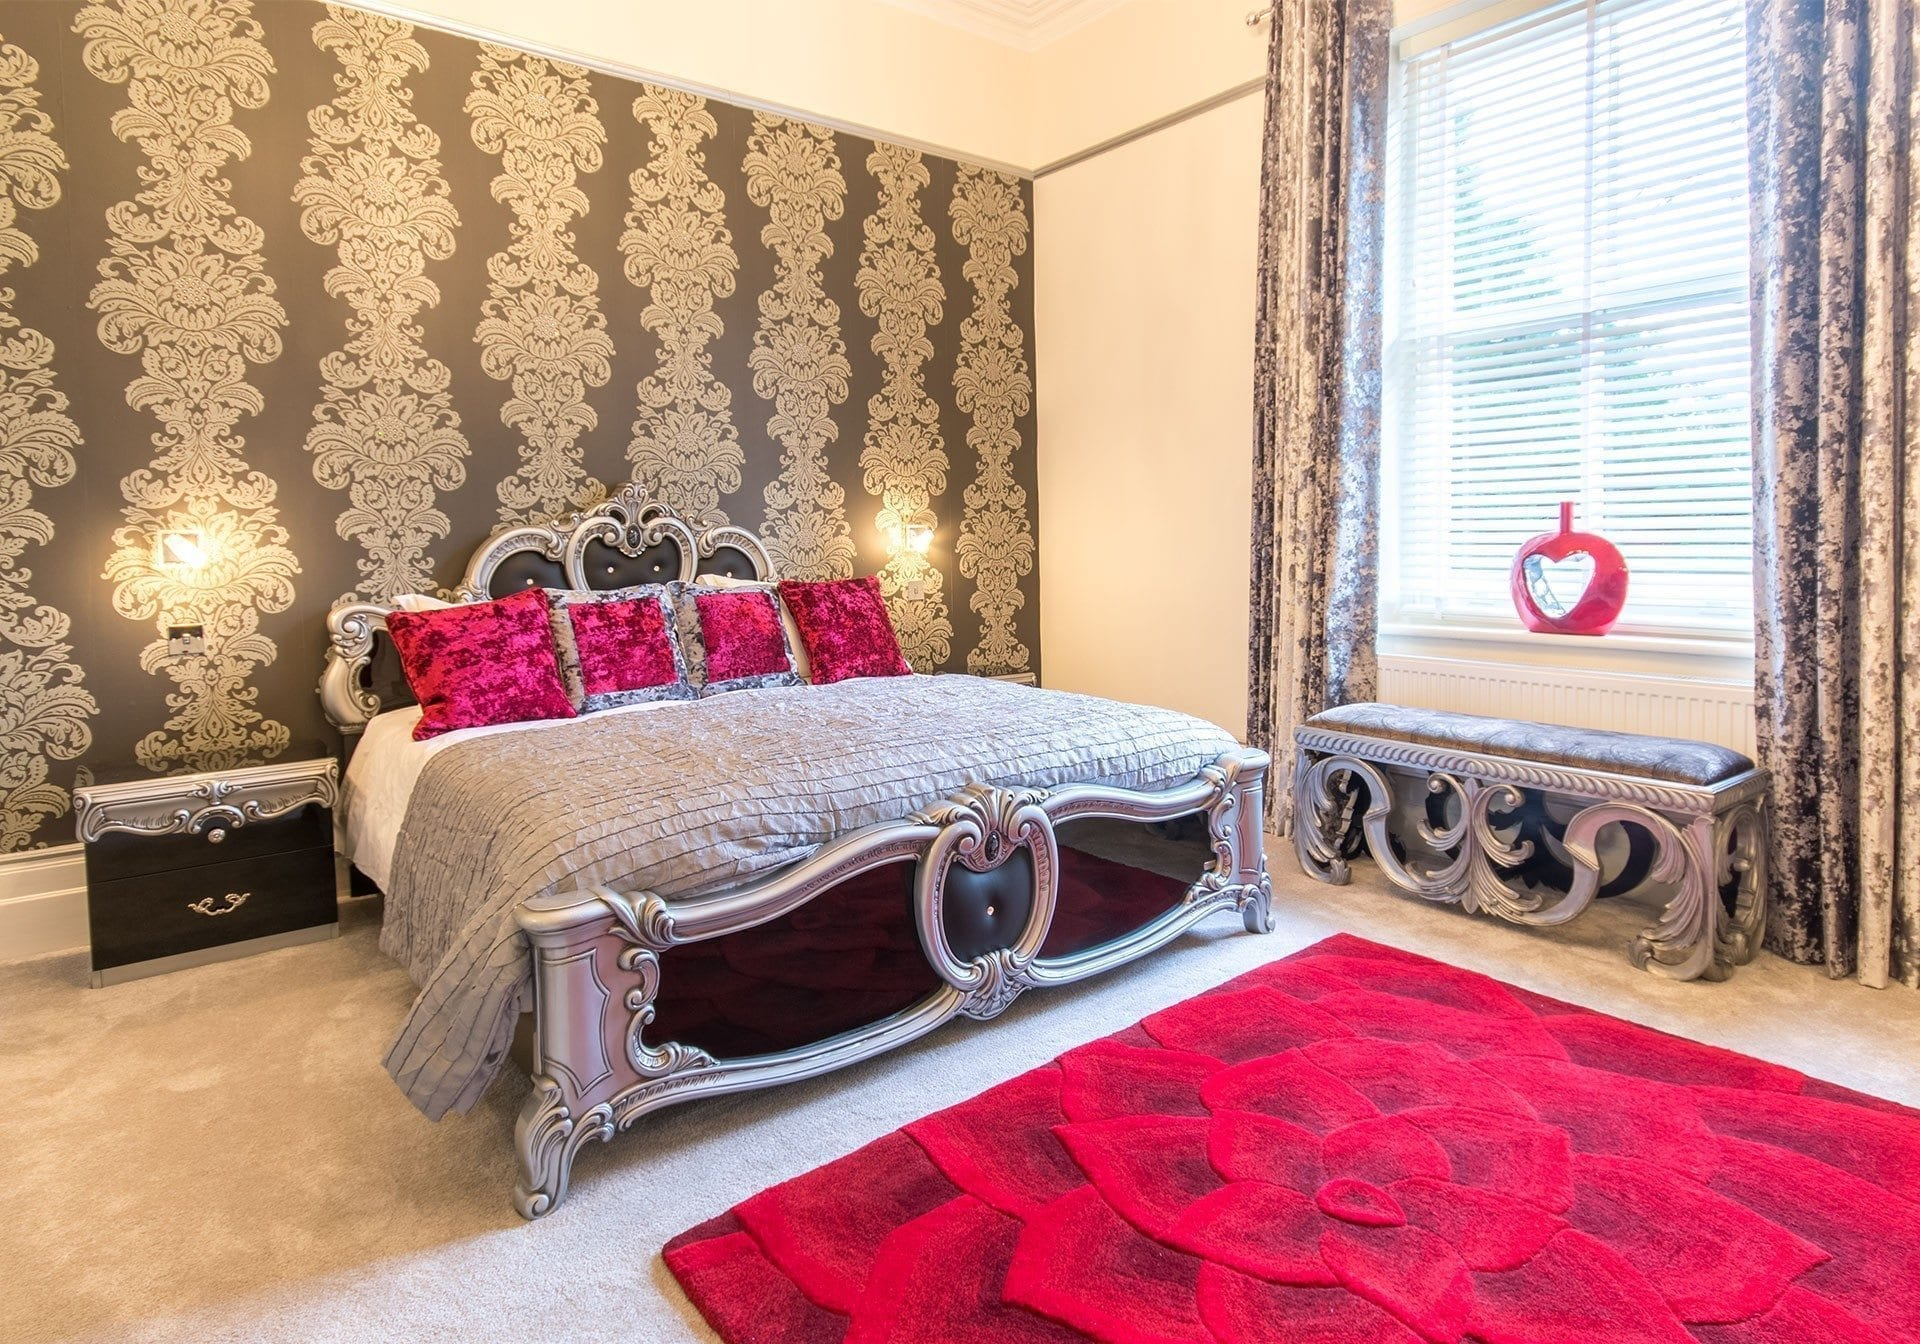 National Bedroom Furniture Grand National From Alb140 Derby Manor